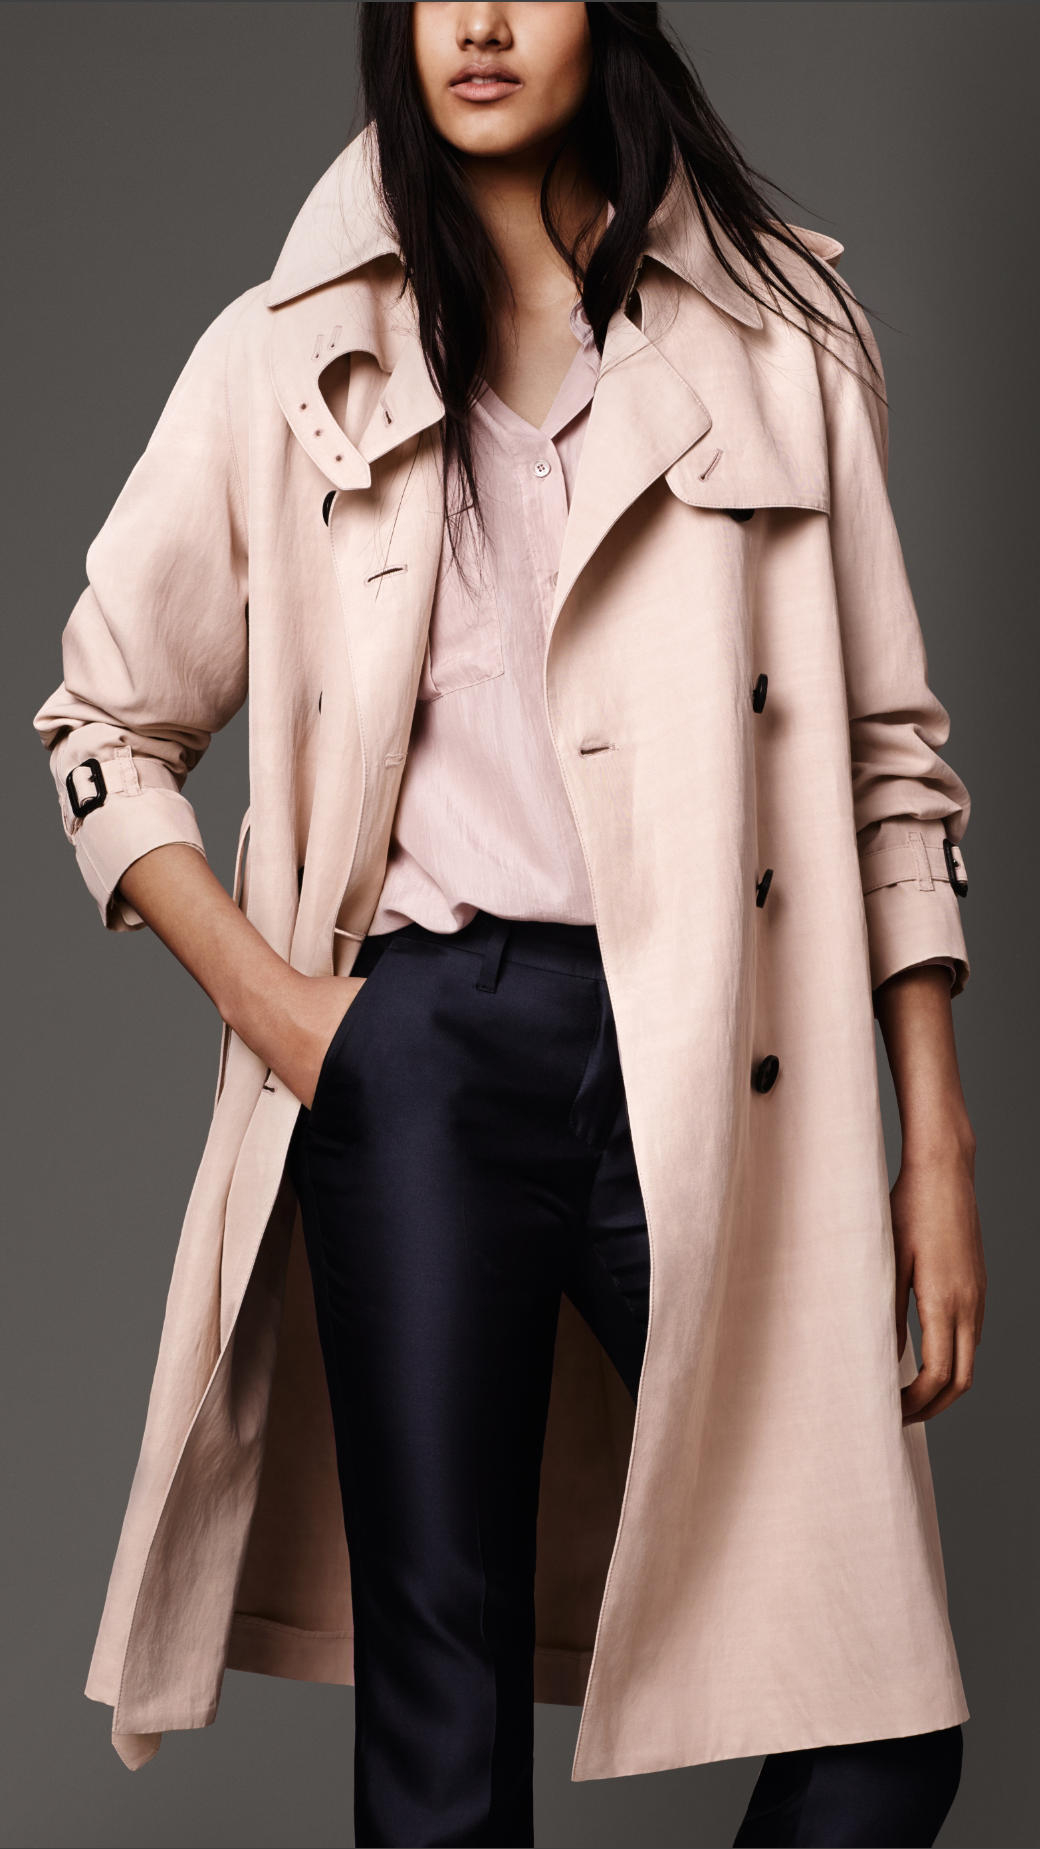 Burberry Showerproof Cotton Blend Trench Coat in Pink